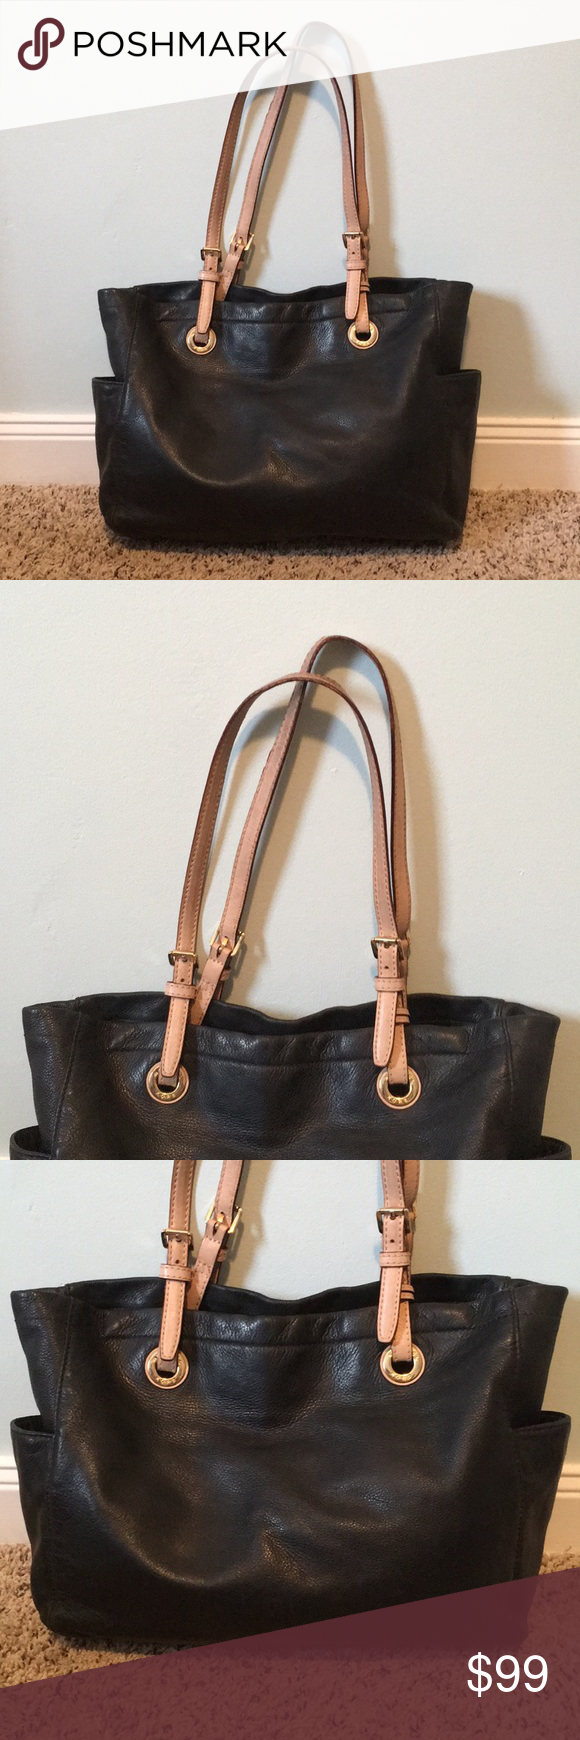 Leather MK tote Beautiful black leather MK tote with tan accent and gold  hardware in very 864b54b1ced1d